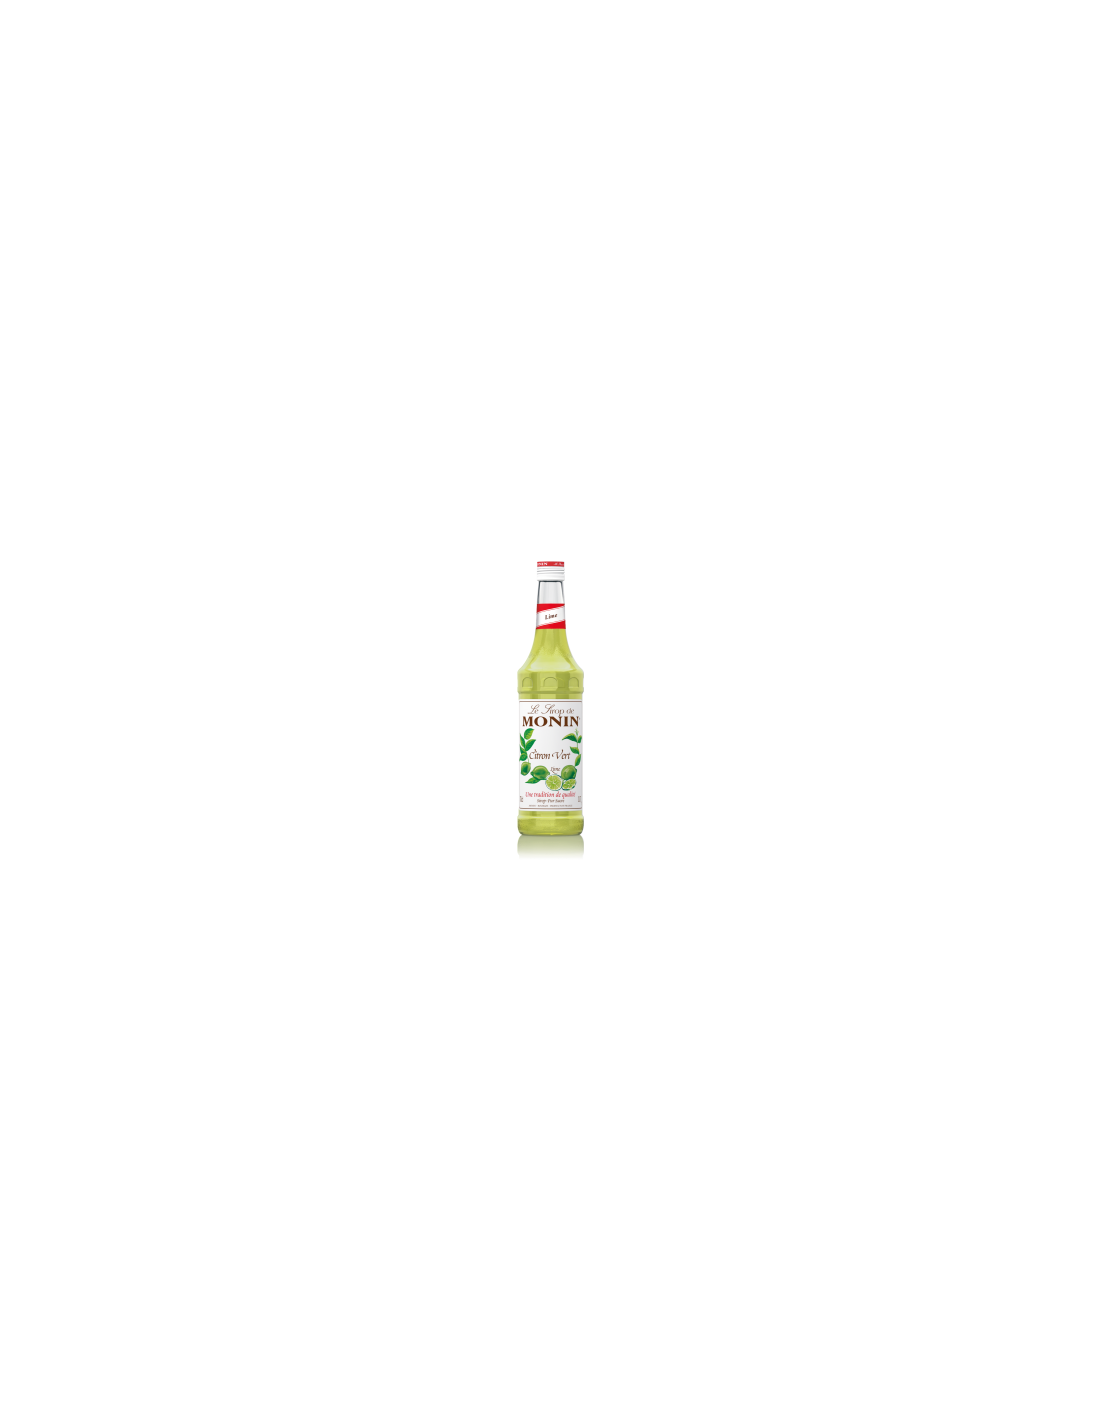 Sirop cocktail Monin Lime Juice Mixed, 0.7L, Franta